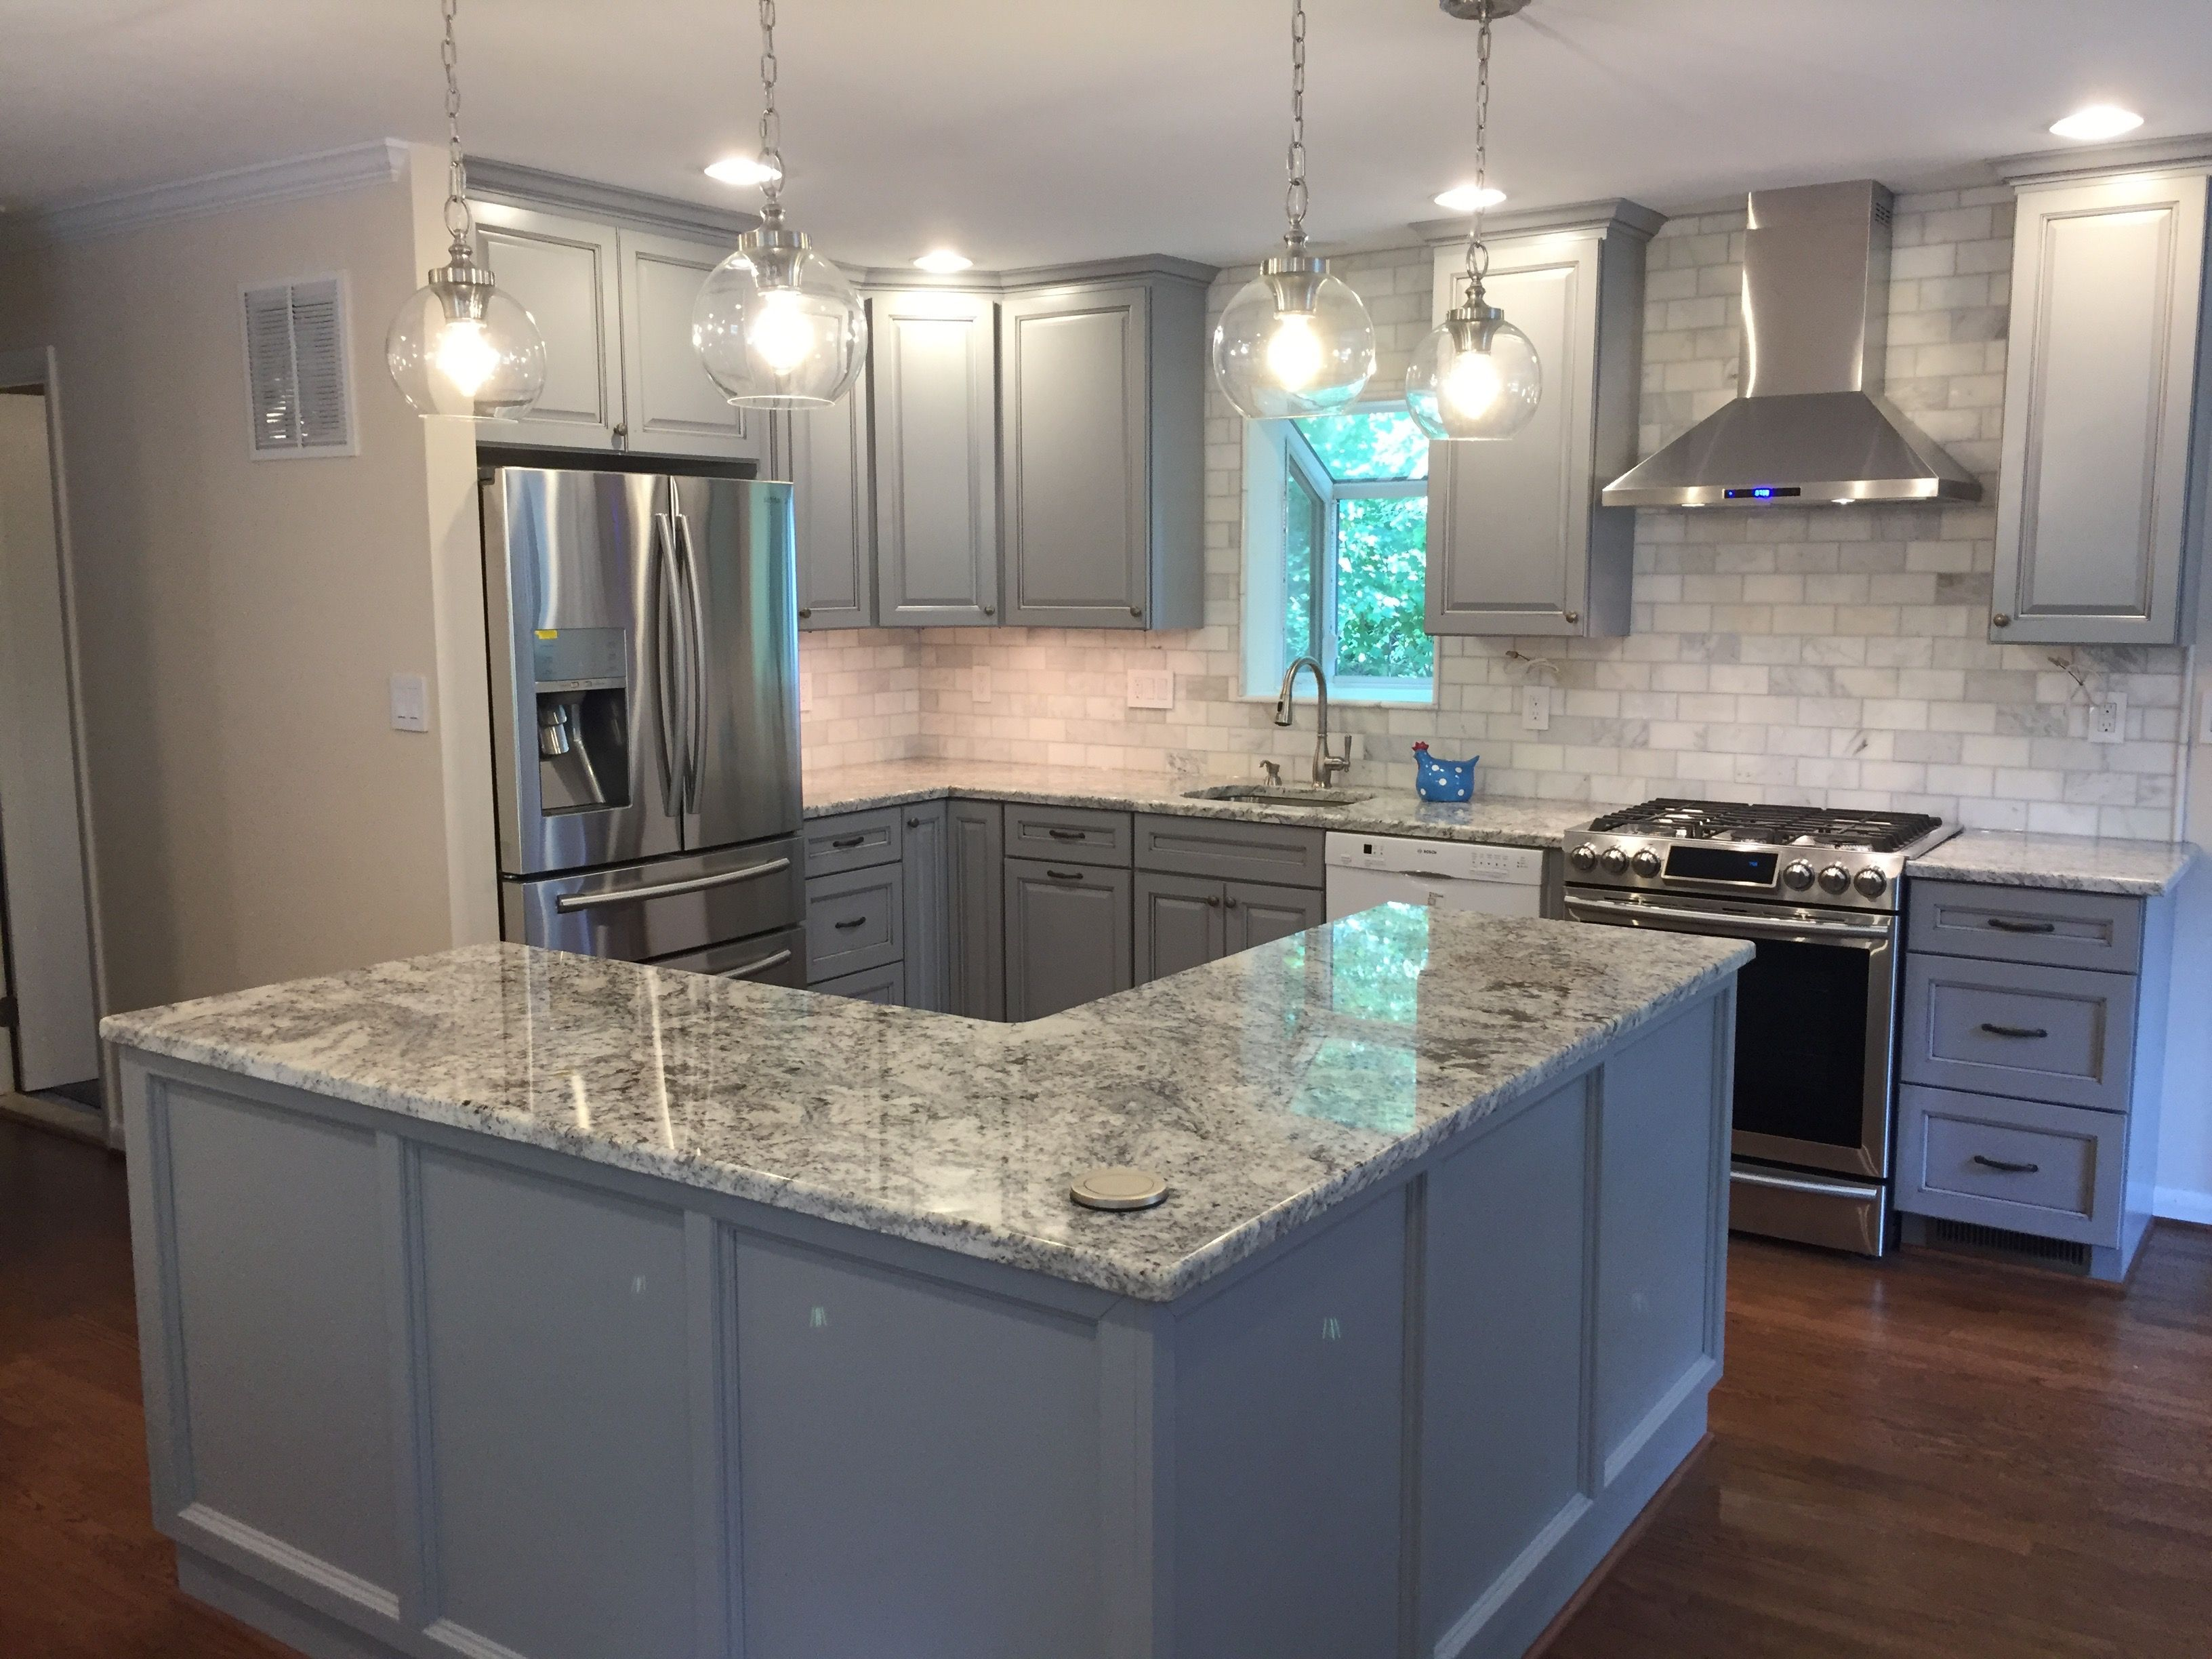 Bright Blue Grey Kitchen created with Baltic Bay Thomasville